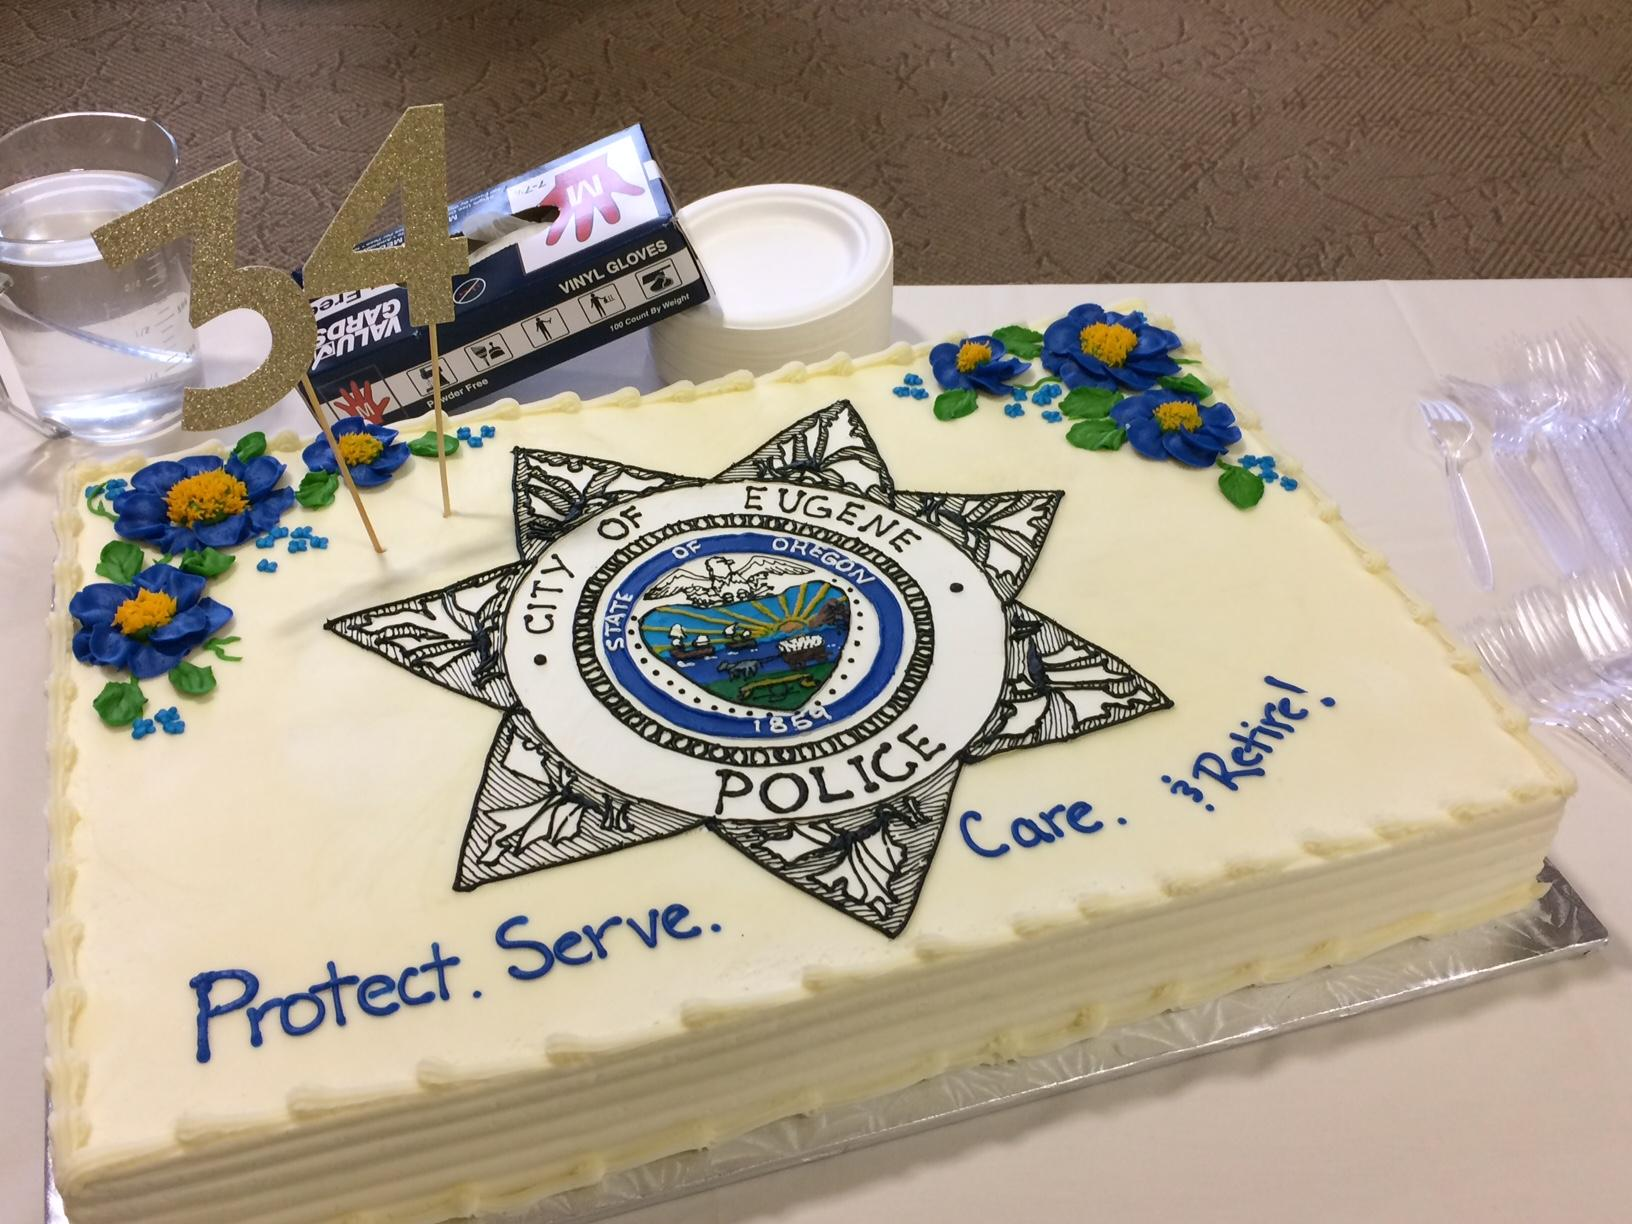 Friends and colleagues celebrate long-time police chief Pete Kerns at retirement party